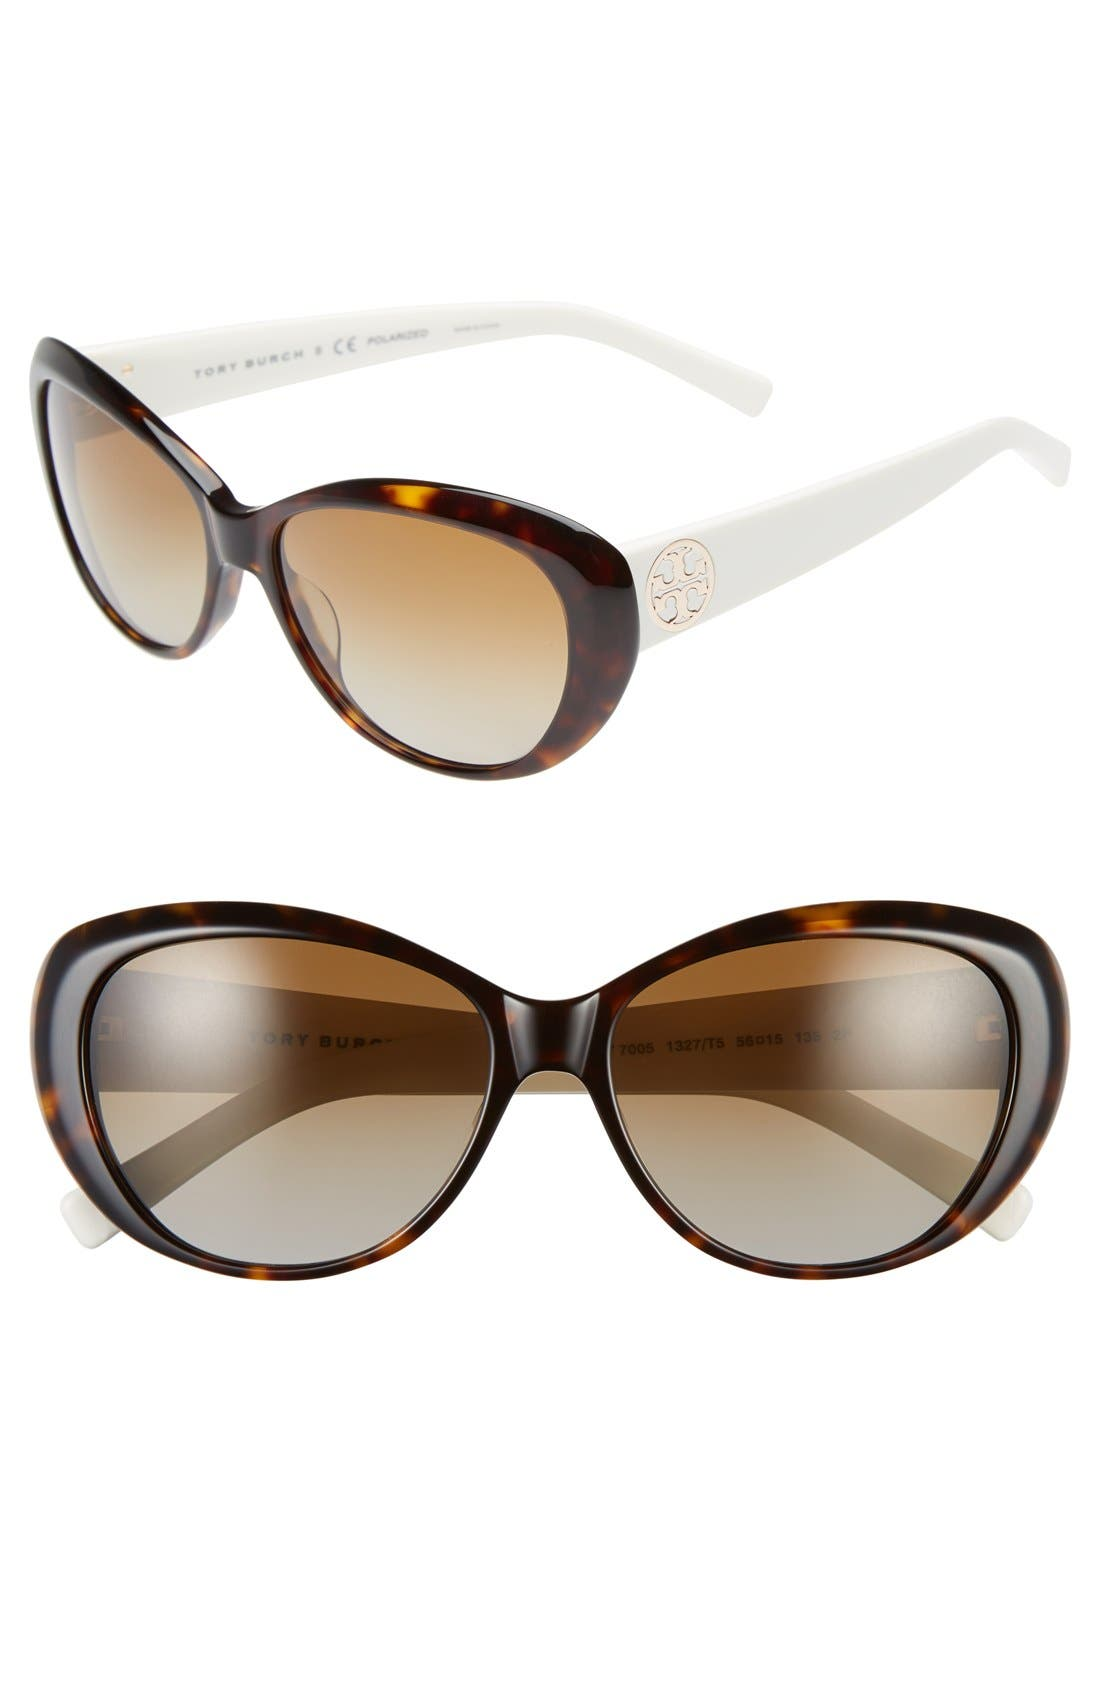 Tory Burch 56mm Polarized Cat Eye Sunglasses